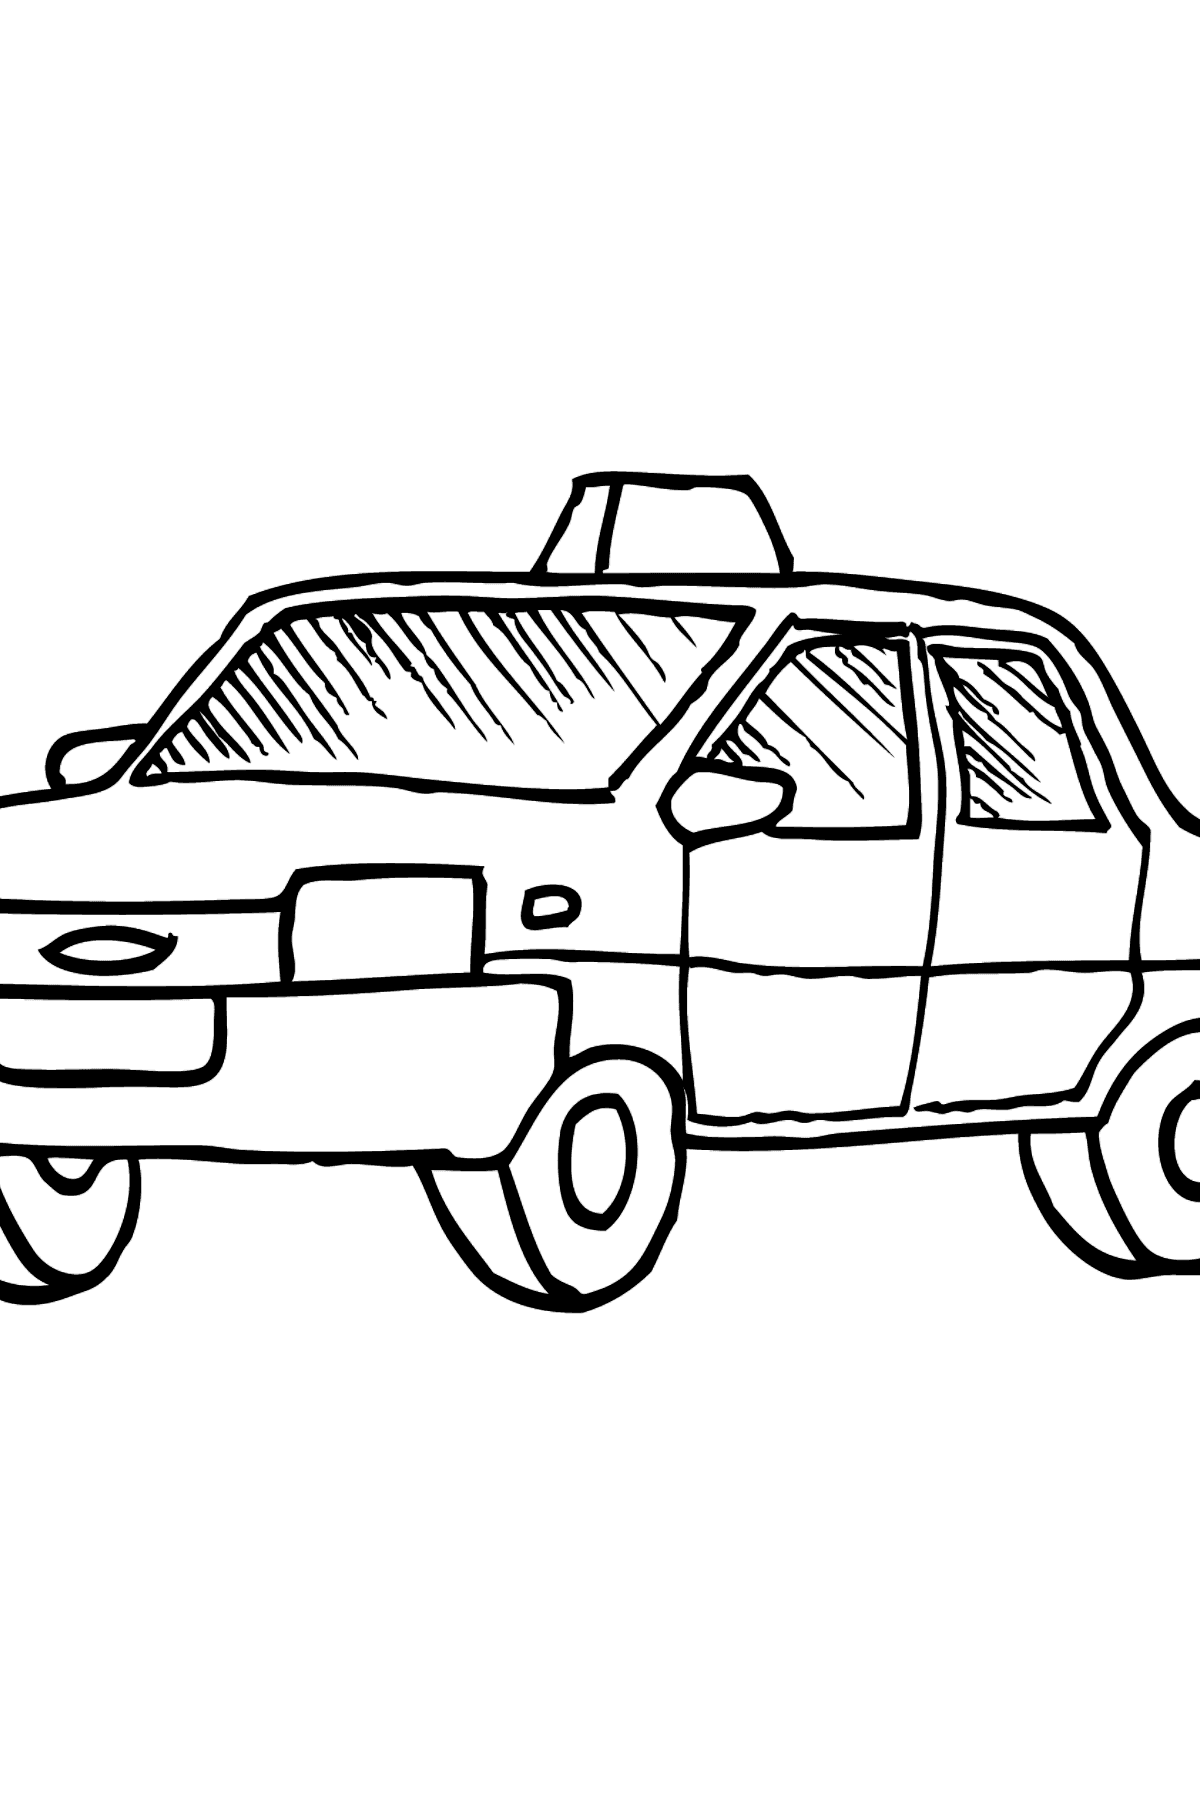 Coloring Page - A Yellow Taxi - Coloring Pages for Kids